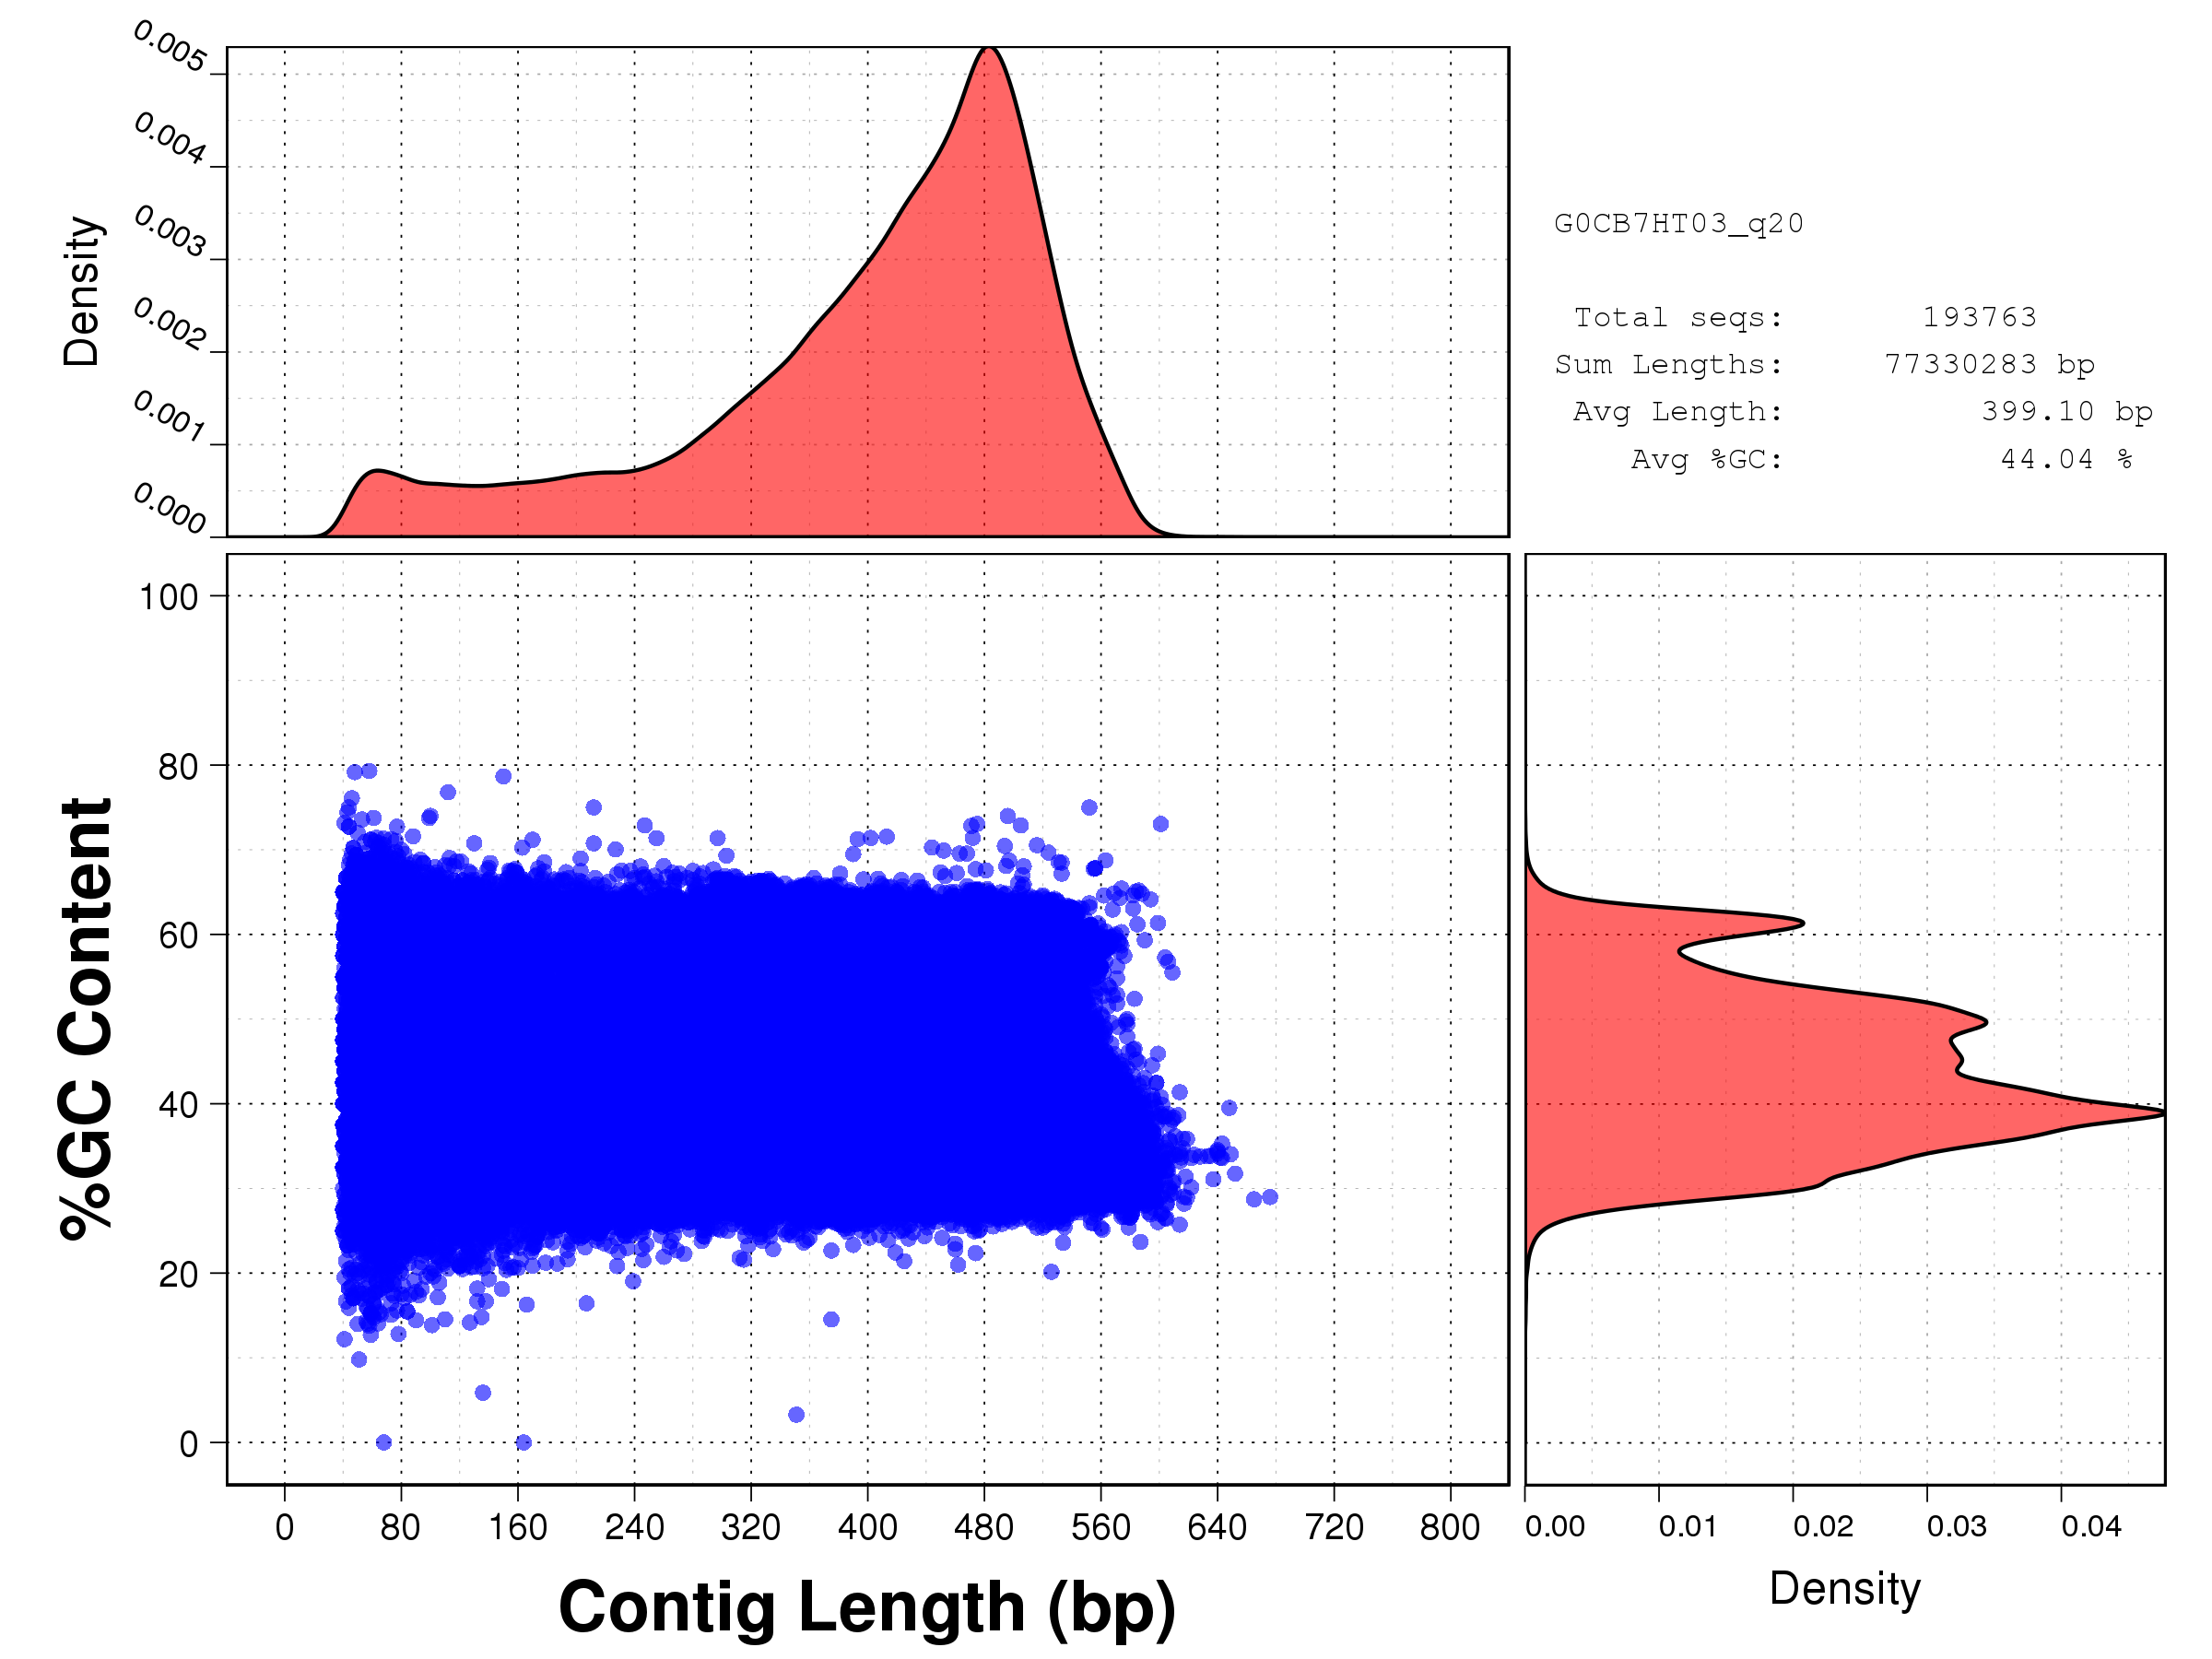 Length vs GC content plot for all starfish reads after Phred Q20 cleaning: G0CB7HT03.